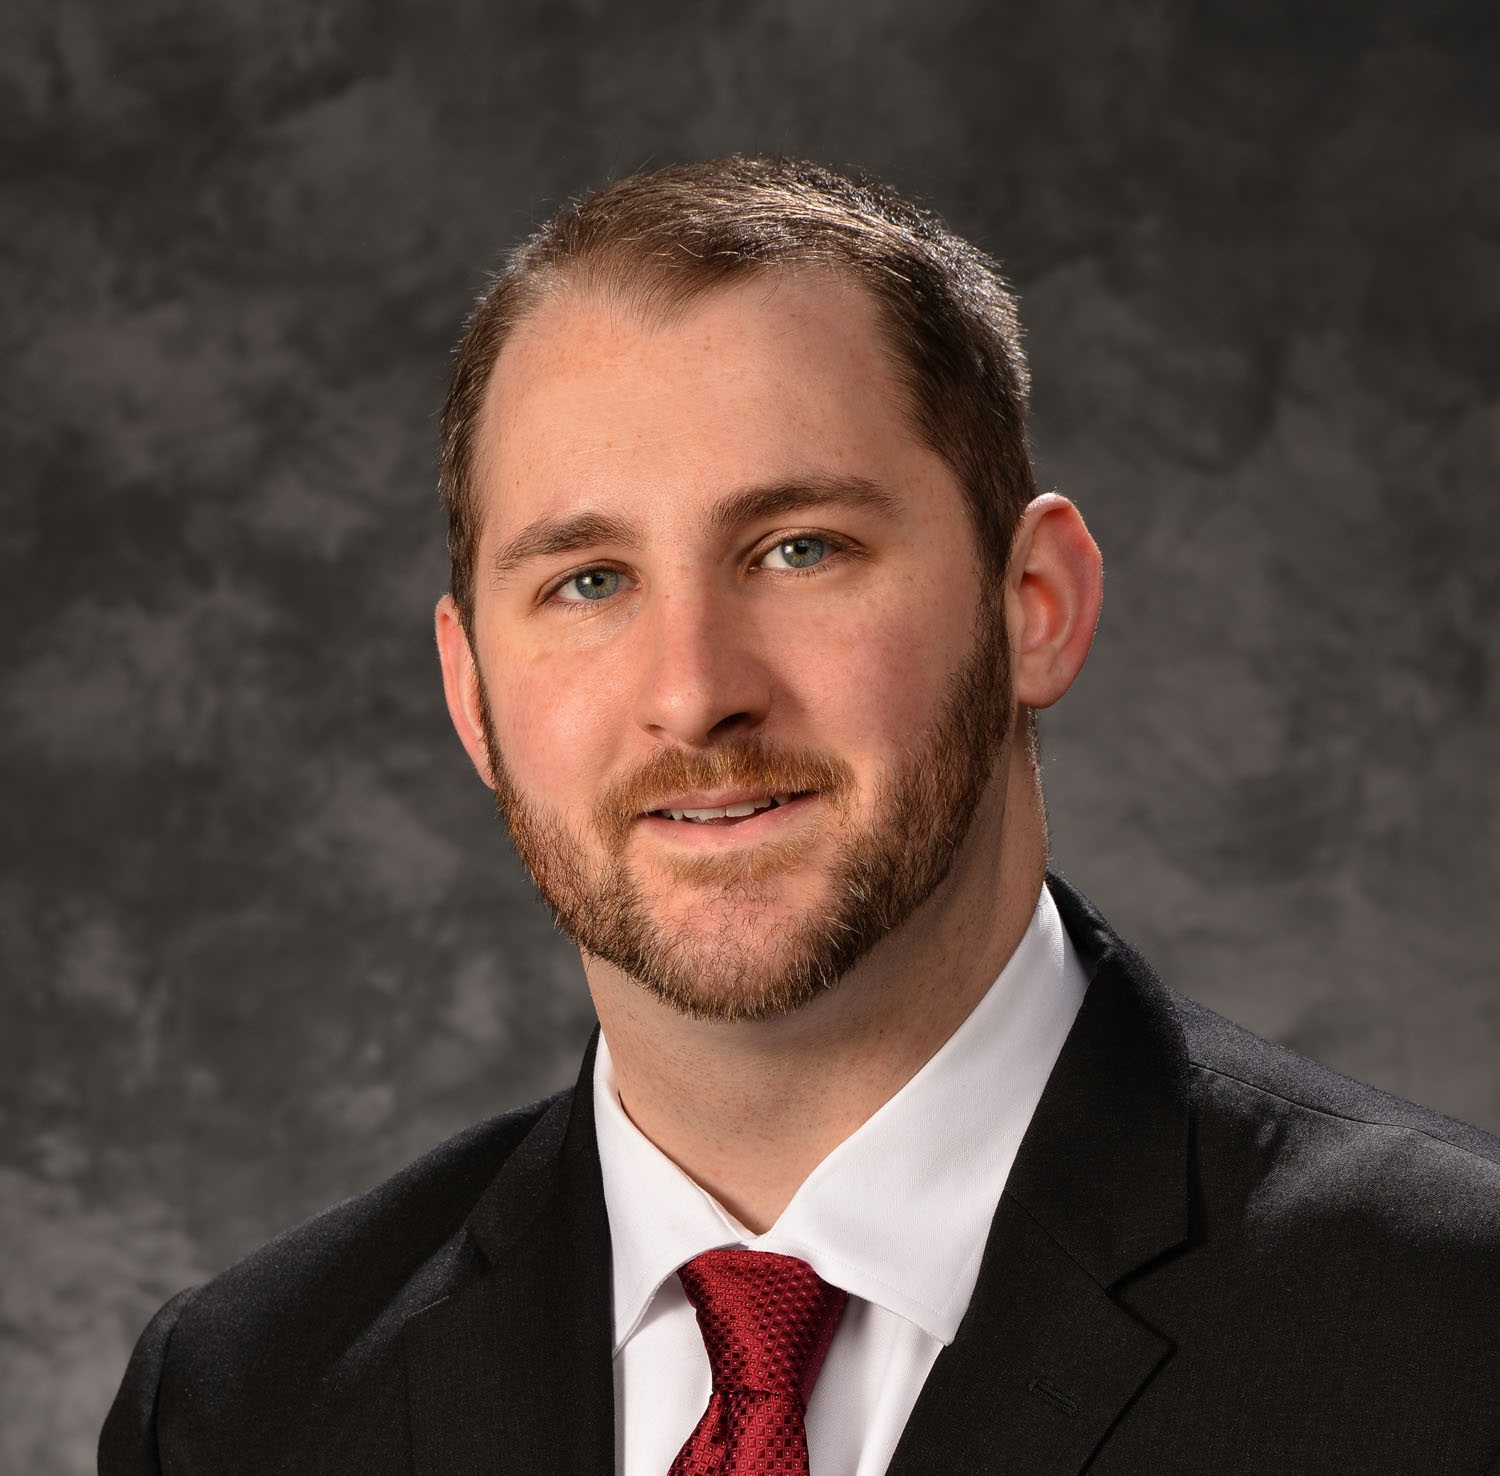 Ryan McGuinness, financial advisor Lincolnshire IL